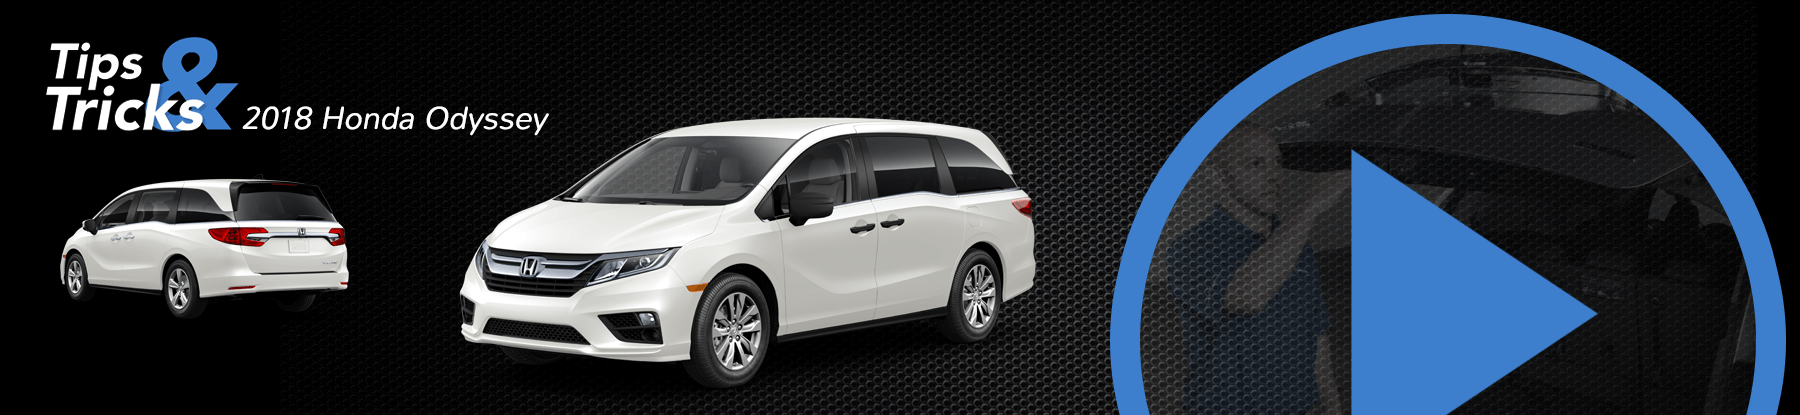 2018 Honda Odyssey Tips and Tricks Banner